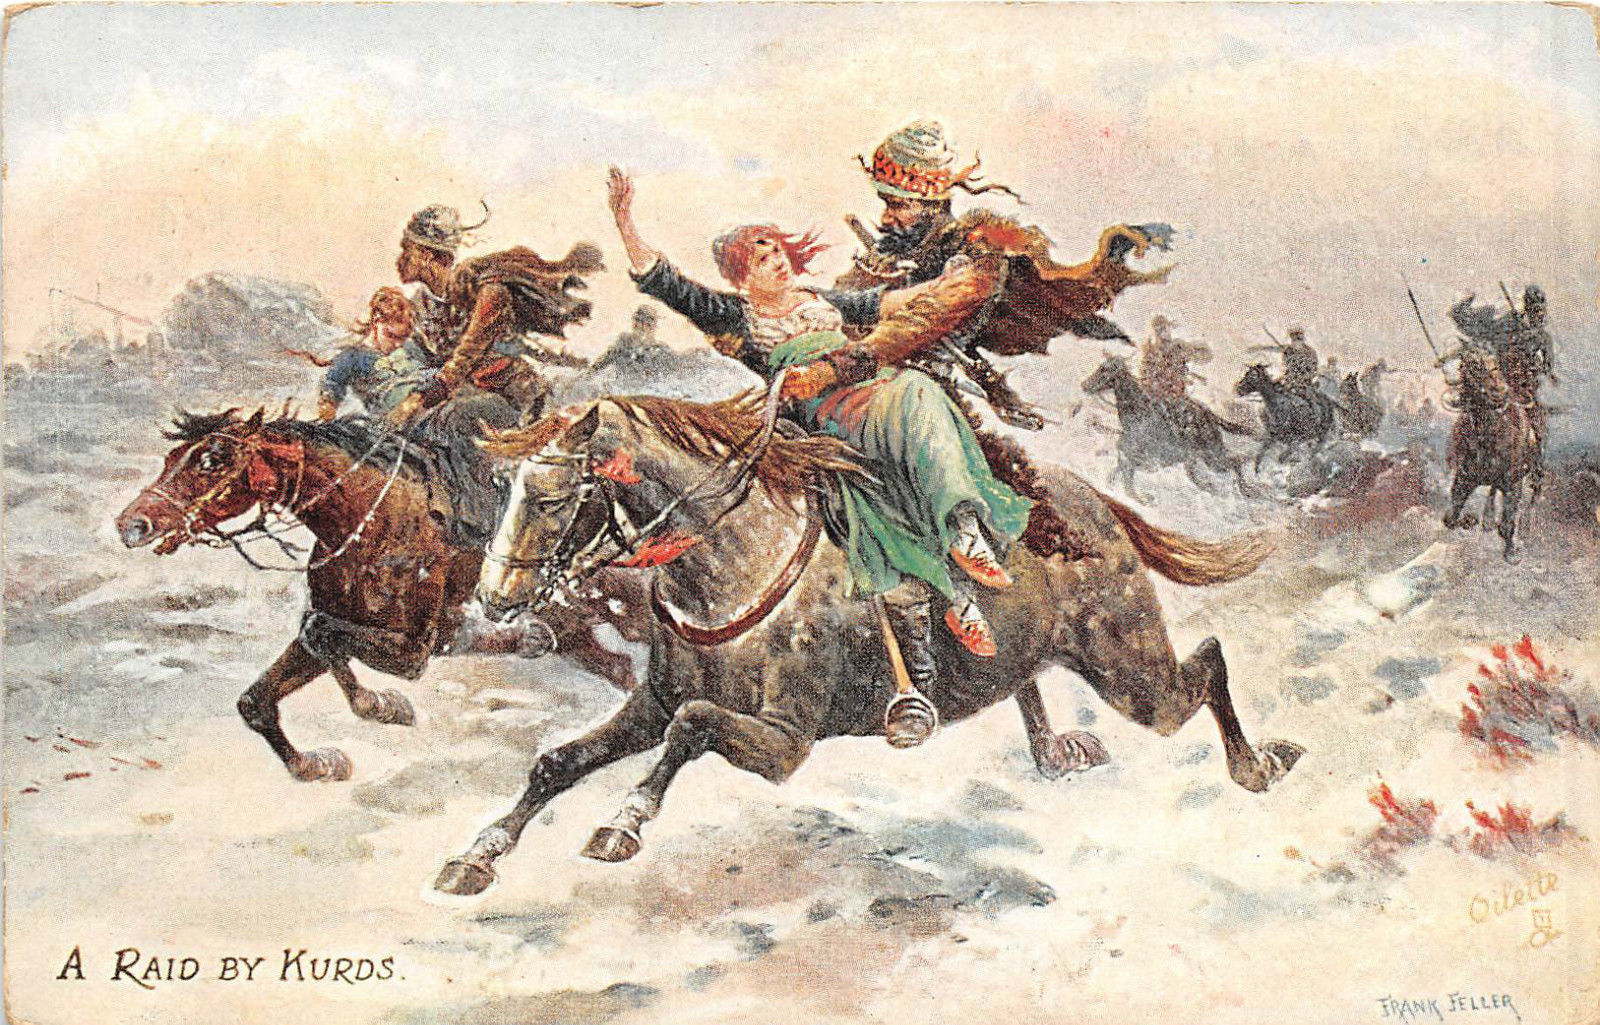 Antique Postal Card by Frank Feiler - A Raid by Kurds - Tucks Serie Life in Caucasus, 1850